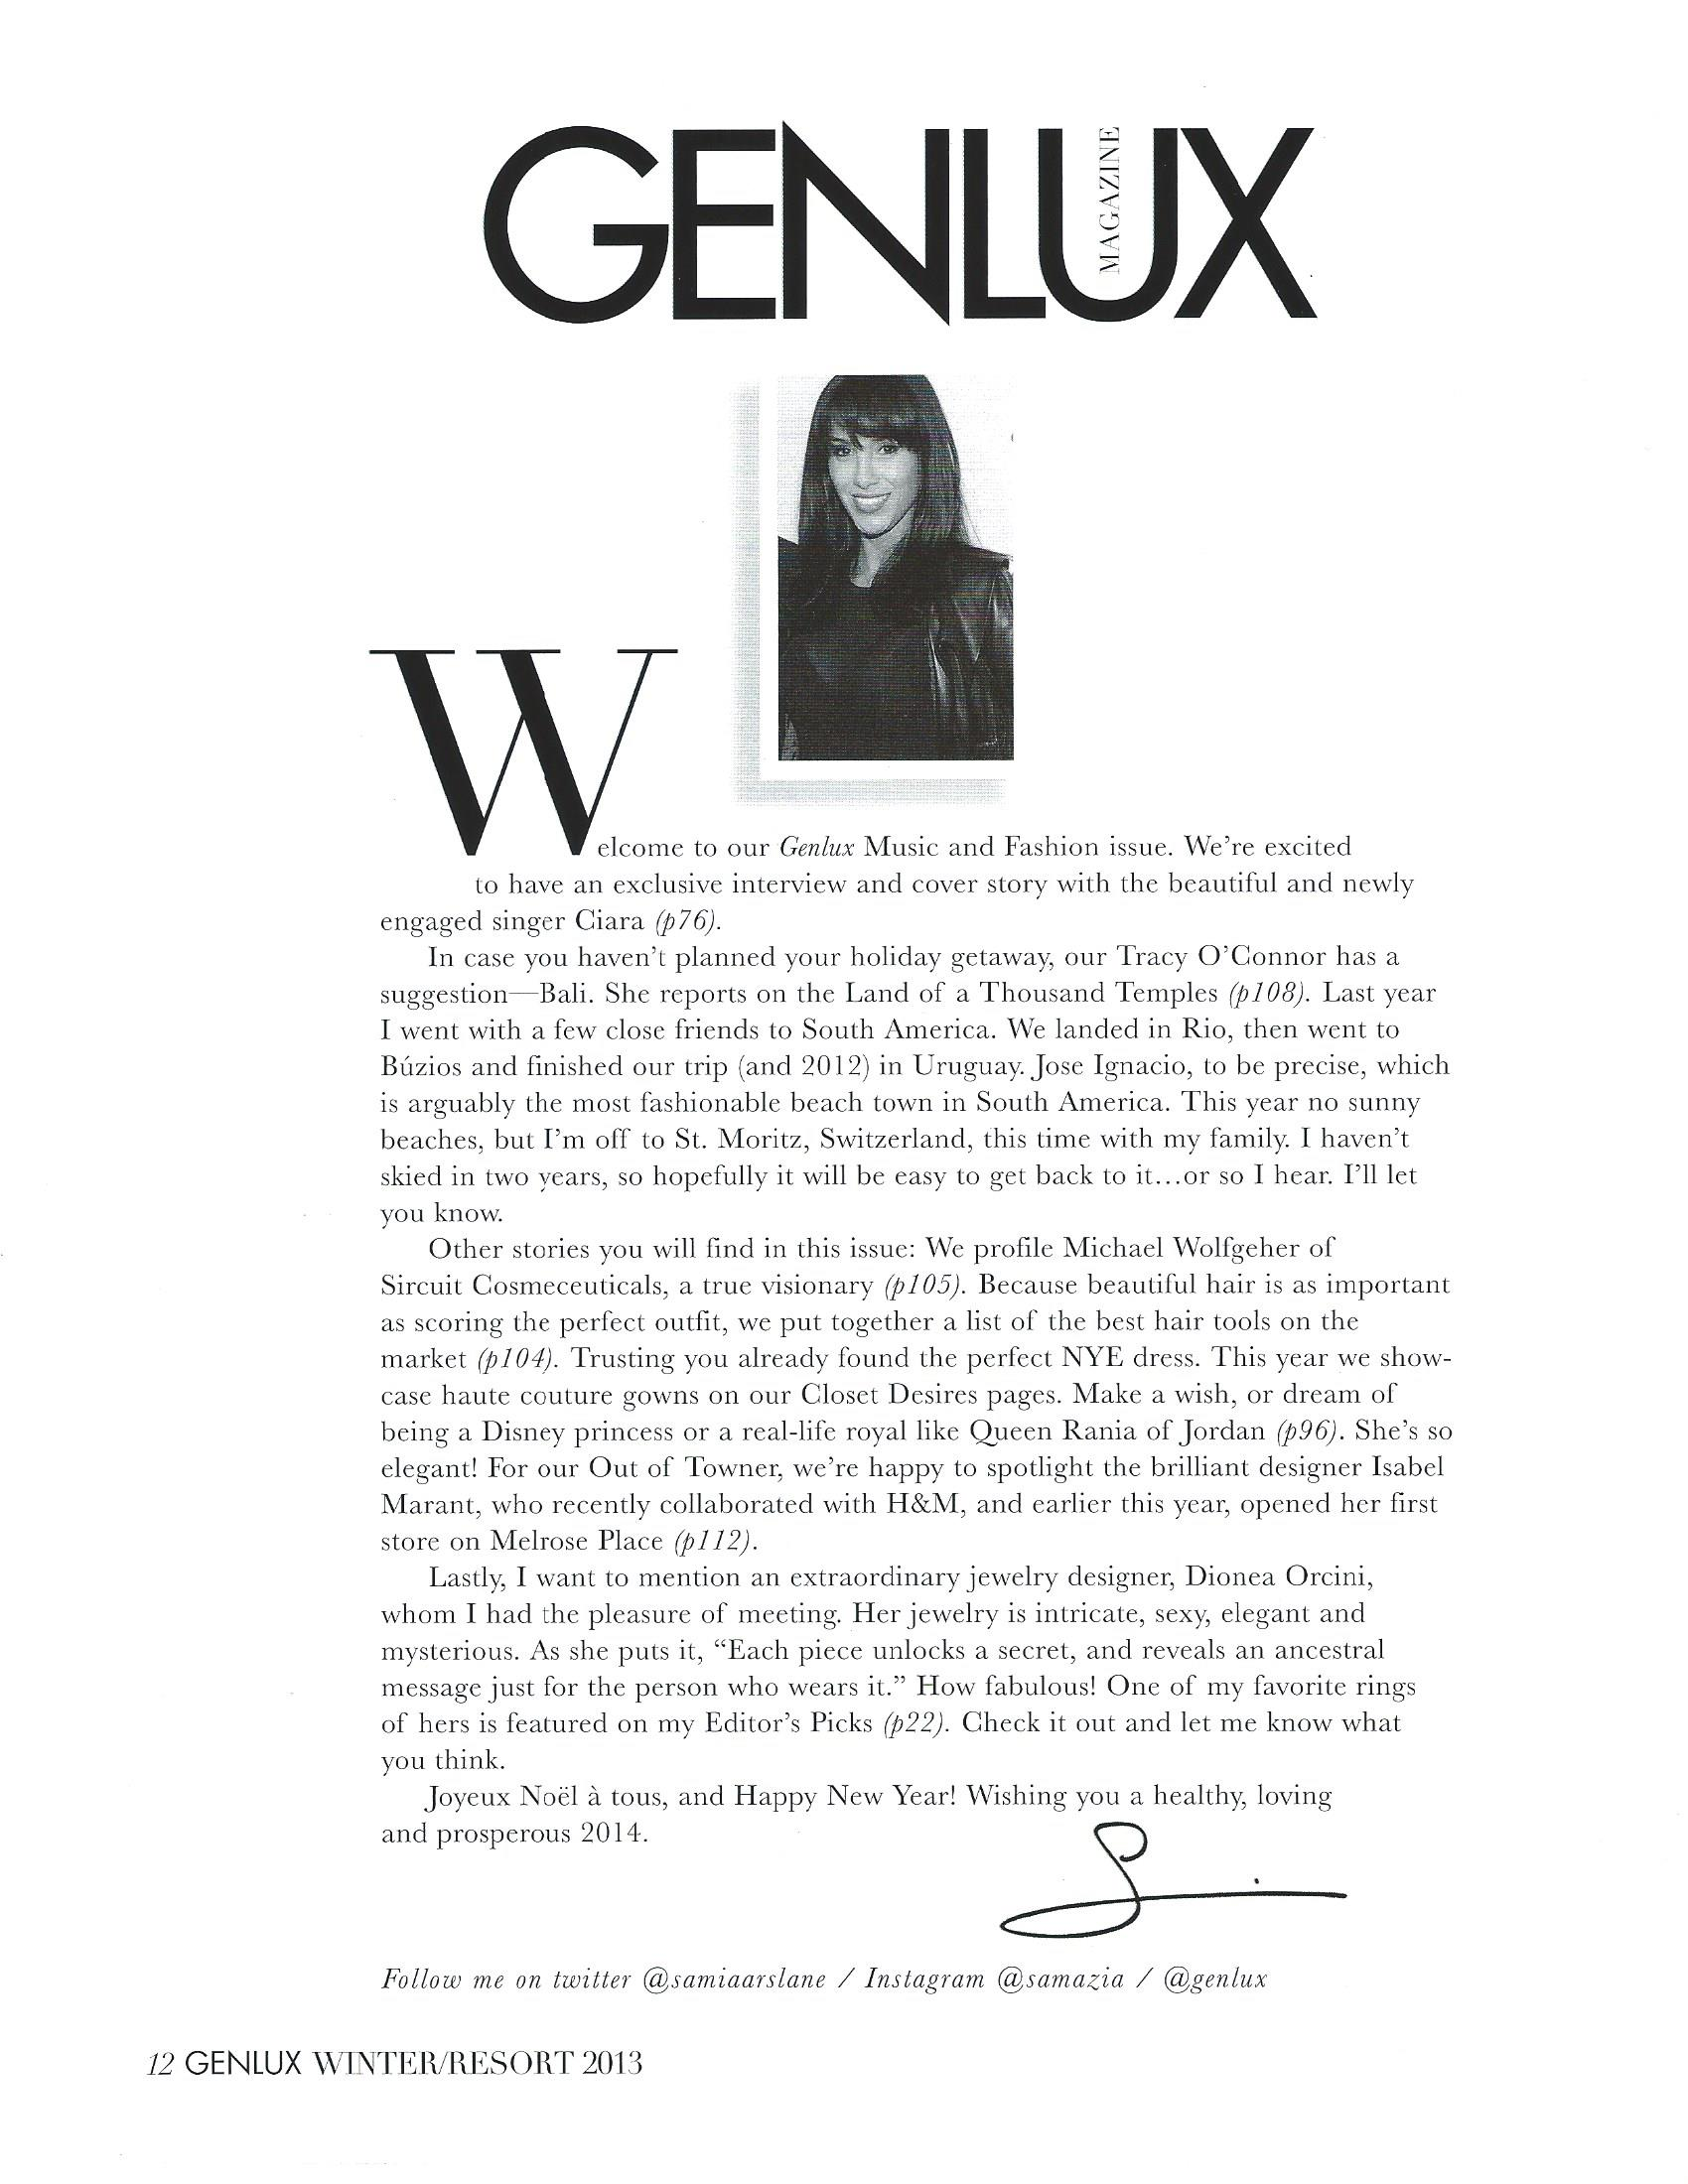 Genlux Magazine Winter-Resort 2013 Editor's Mention